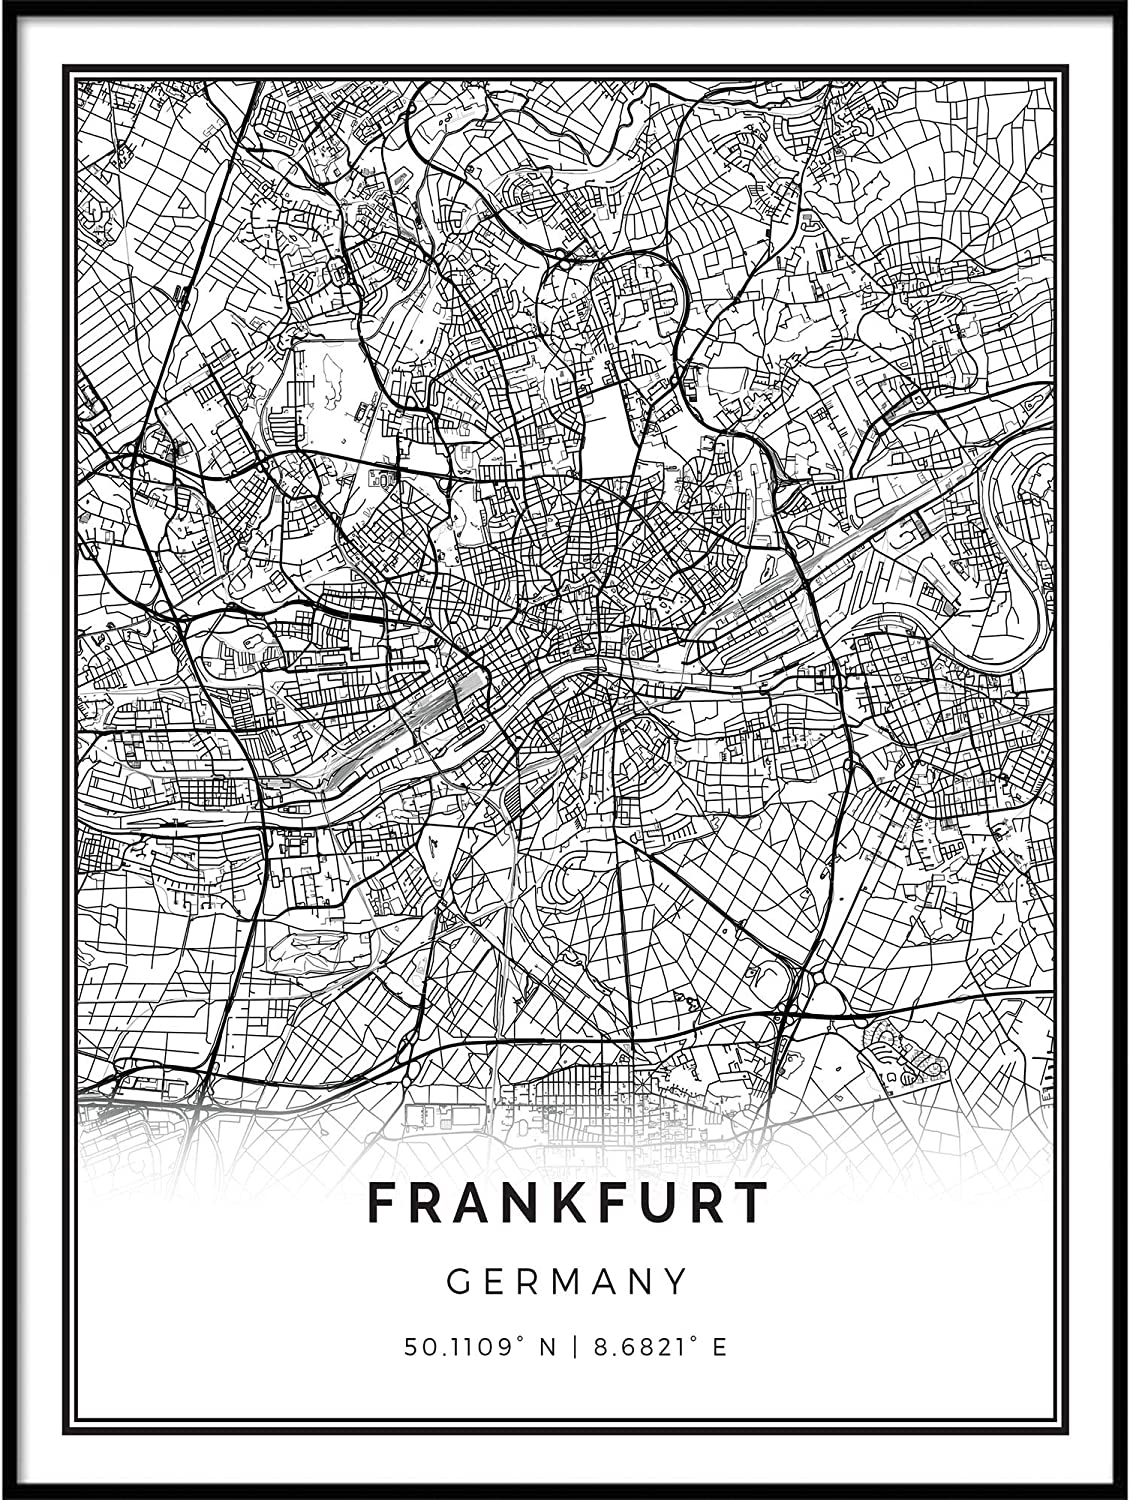 Squareious Frankfurt map Poster Print Ranking TOP17 Black W White Modern and Beauty products